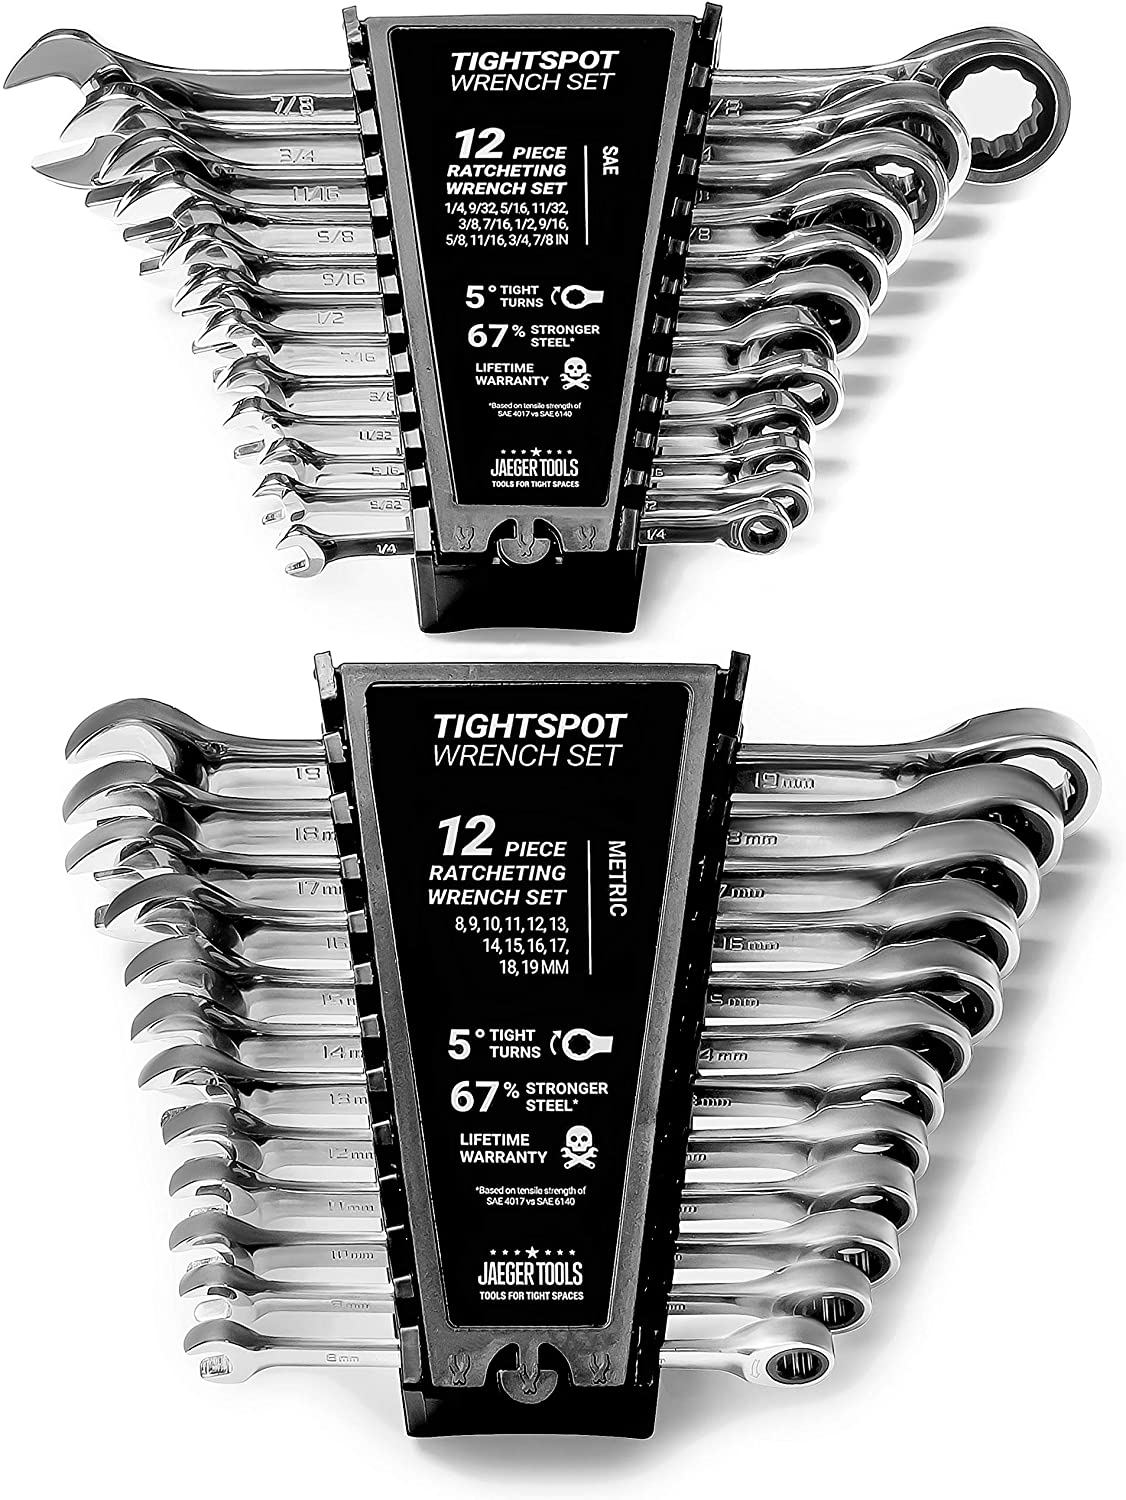 24pc IN MM TIGHTSPOT Free shipping on posting reviews Tampa Mall Ratcheting Wrench MASTER - SET Includin Set